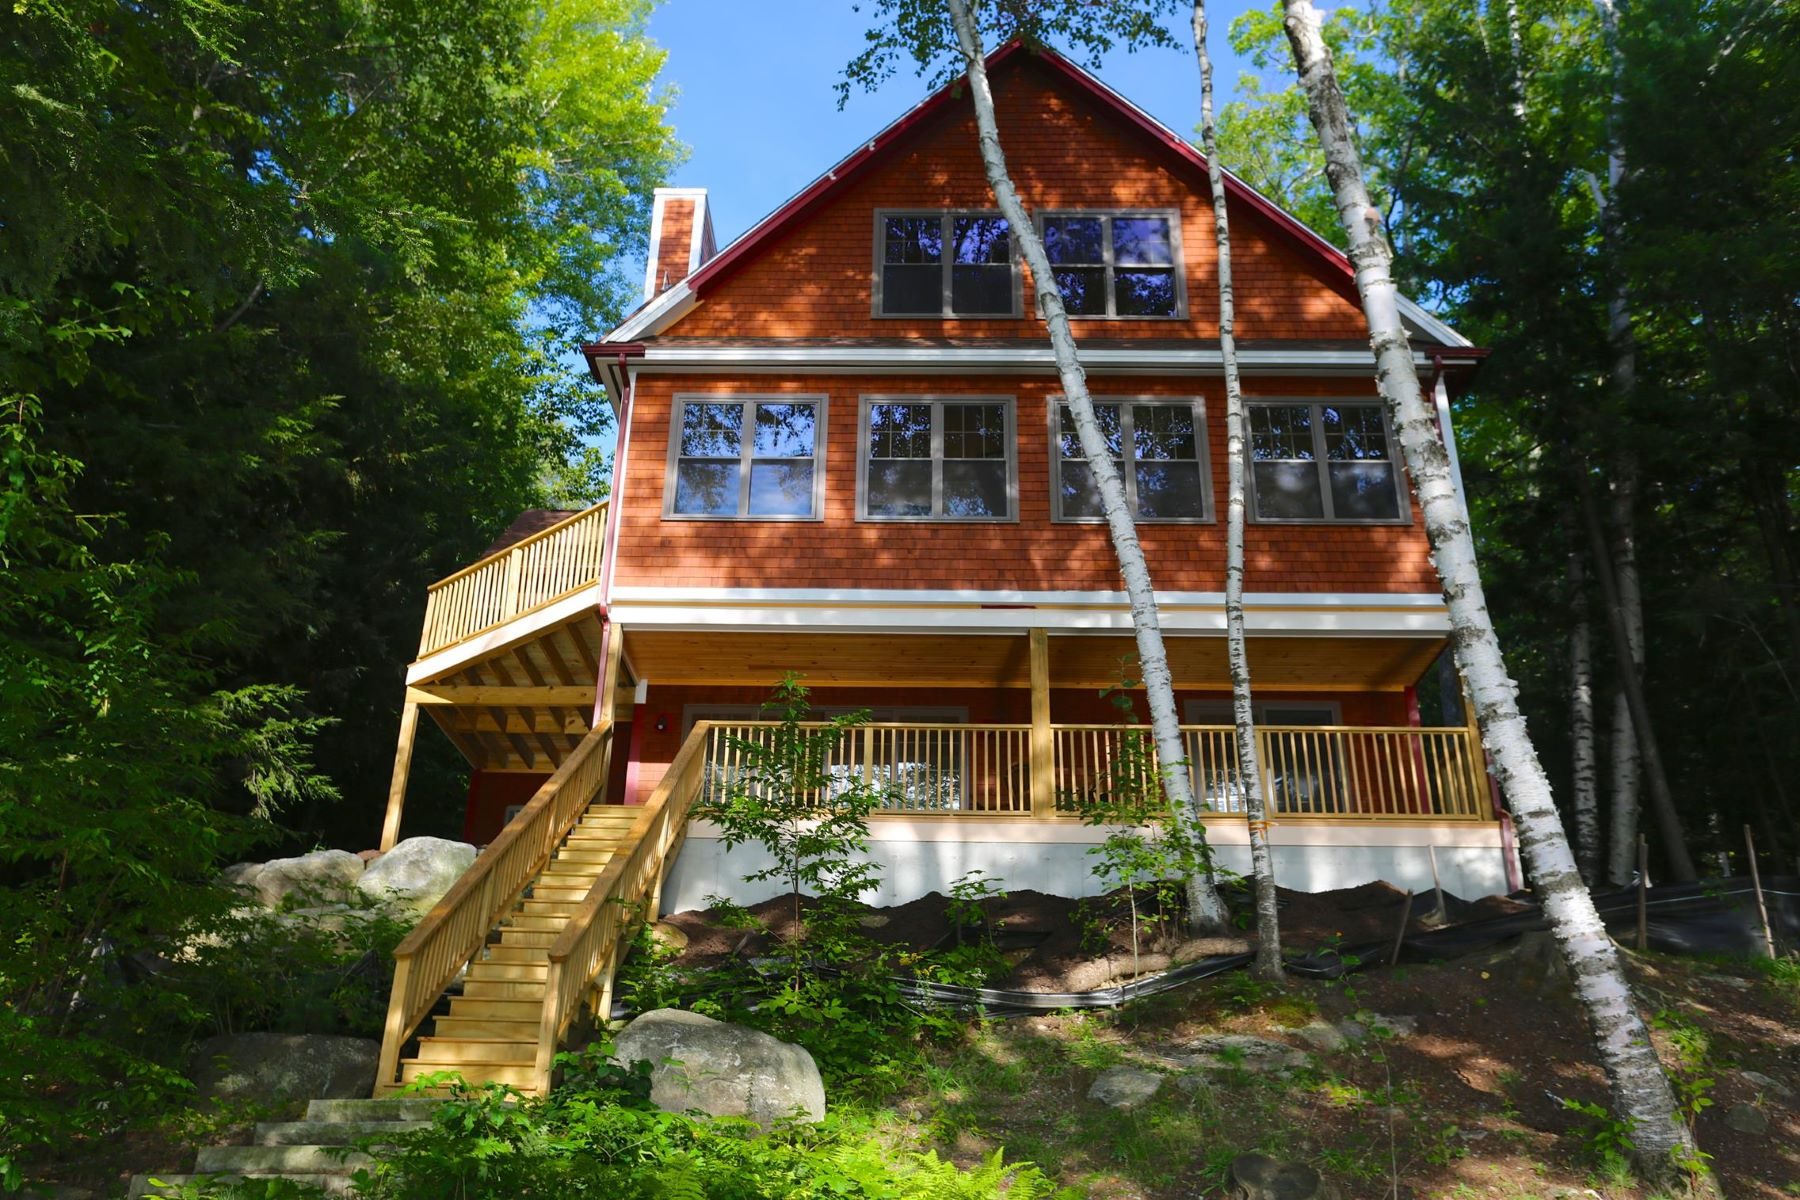 Single Family Home for Sale at Lake Sunapee - Eastern Shore 24 Highland, Newbury, New Hampshire, 03255 United States